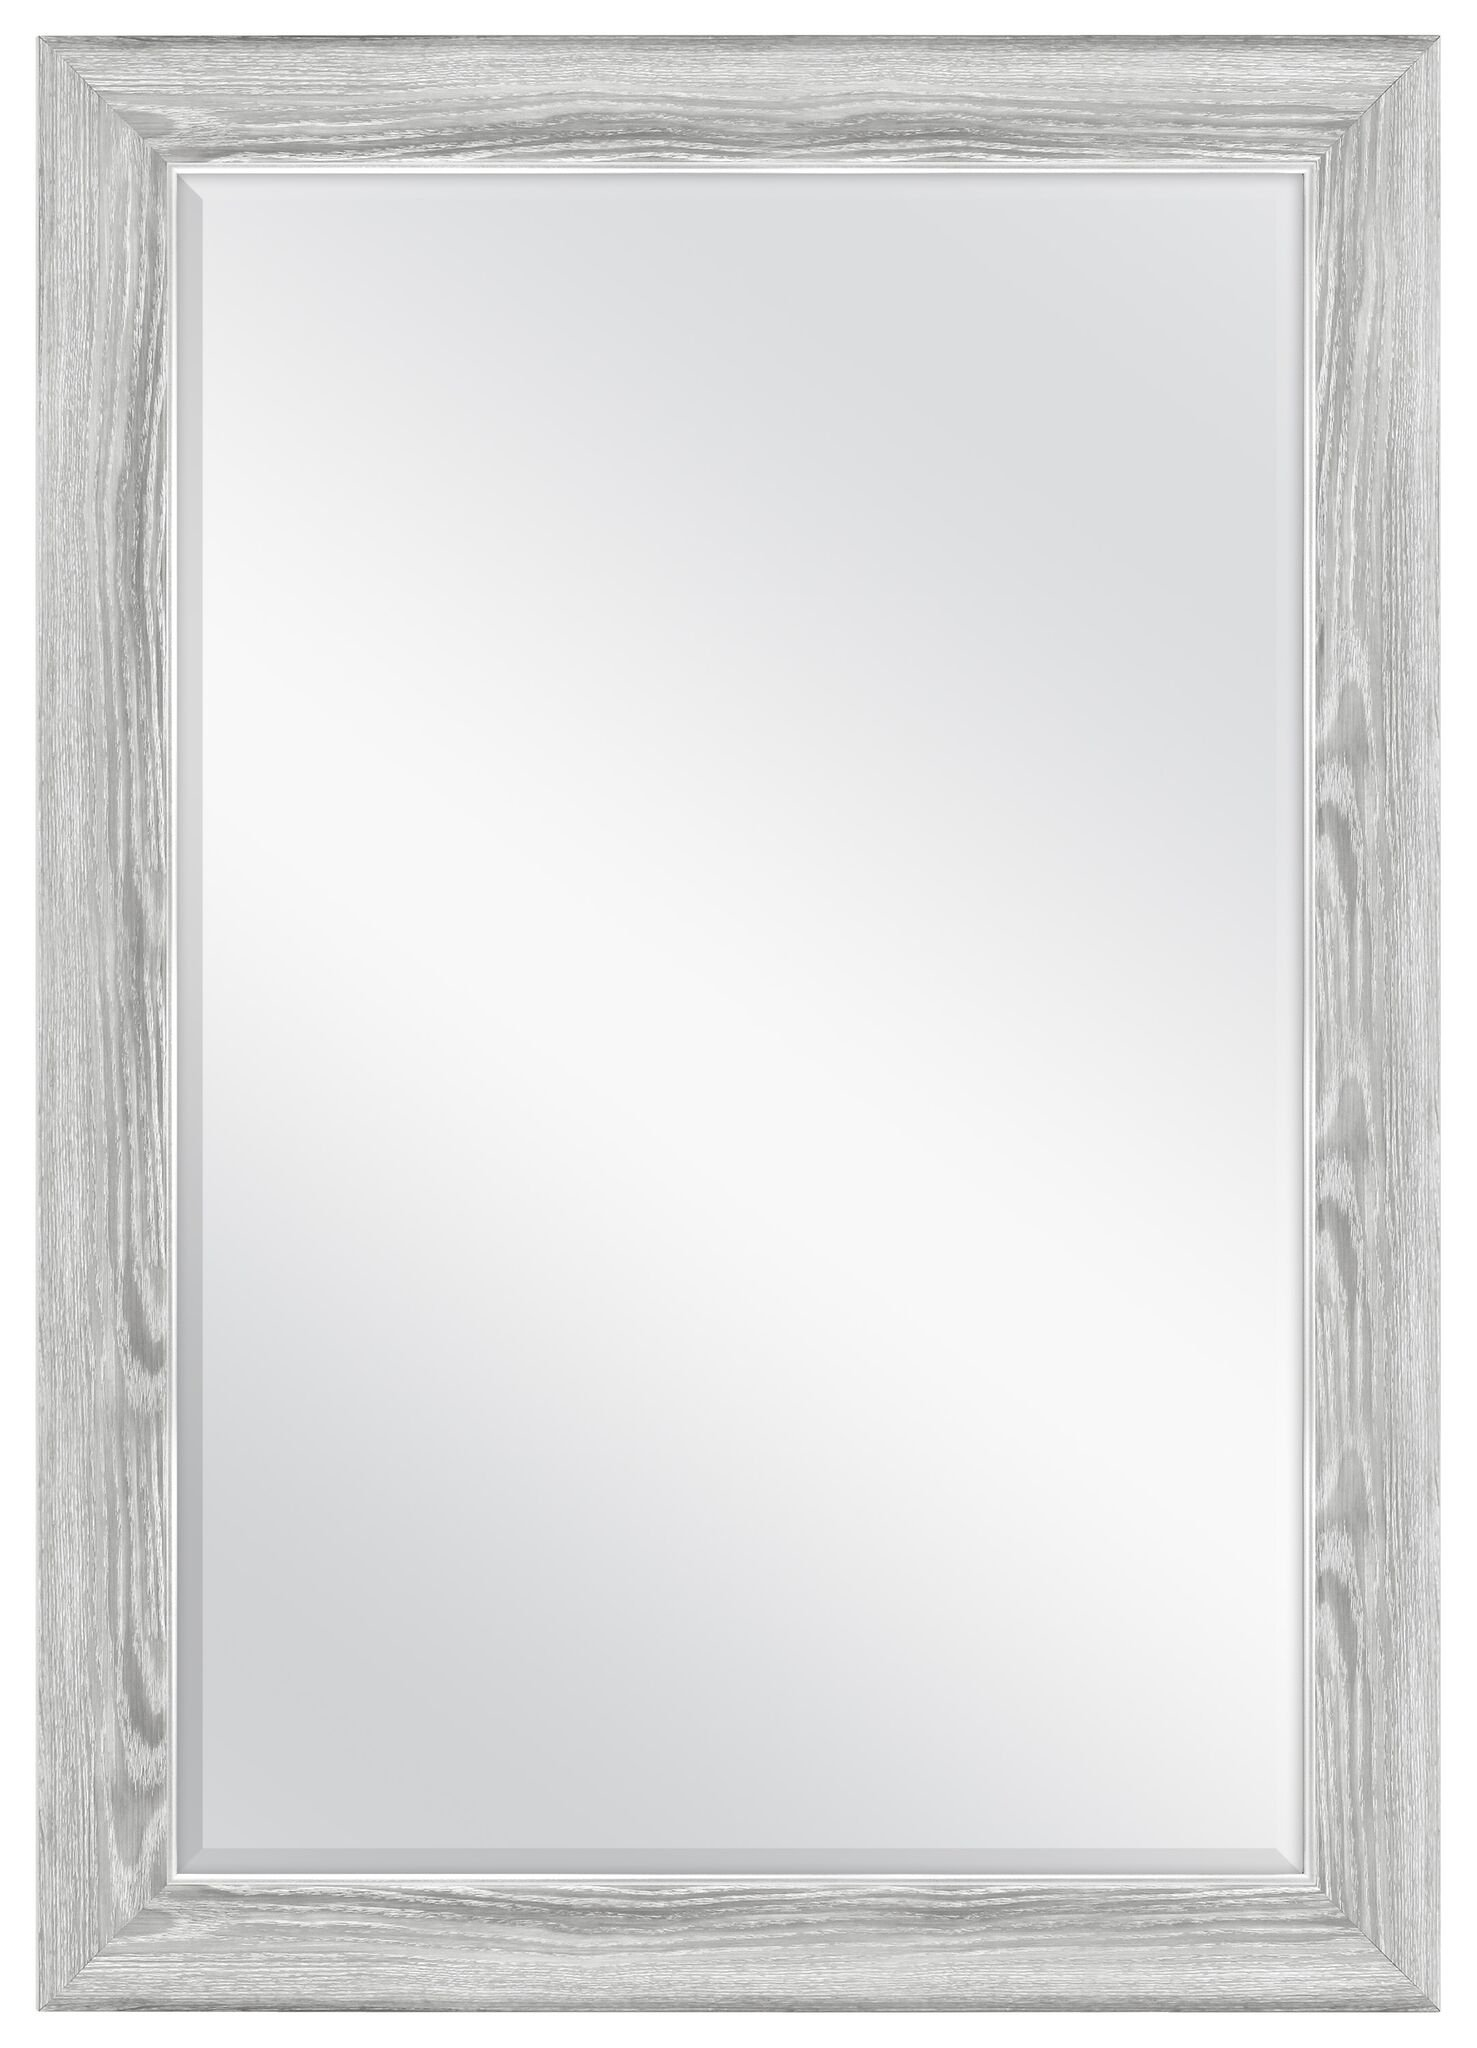 MCS 66949 24x36 inch Curvature Mirror, 29.5x41.5 Overall Size, 24x36, Gray Woodgrain